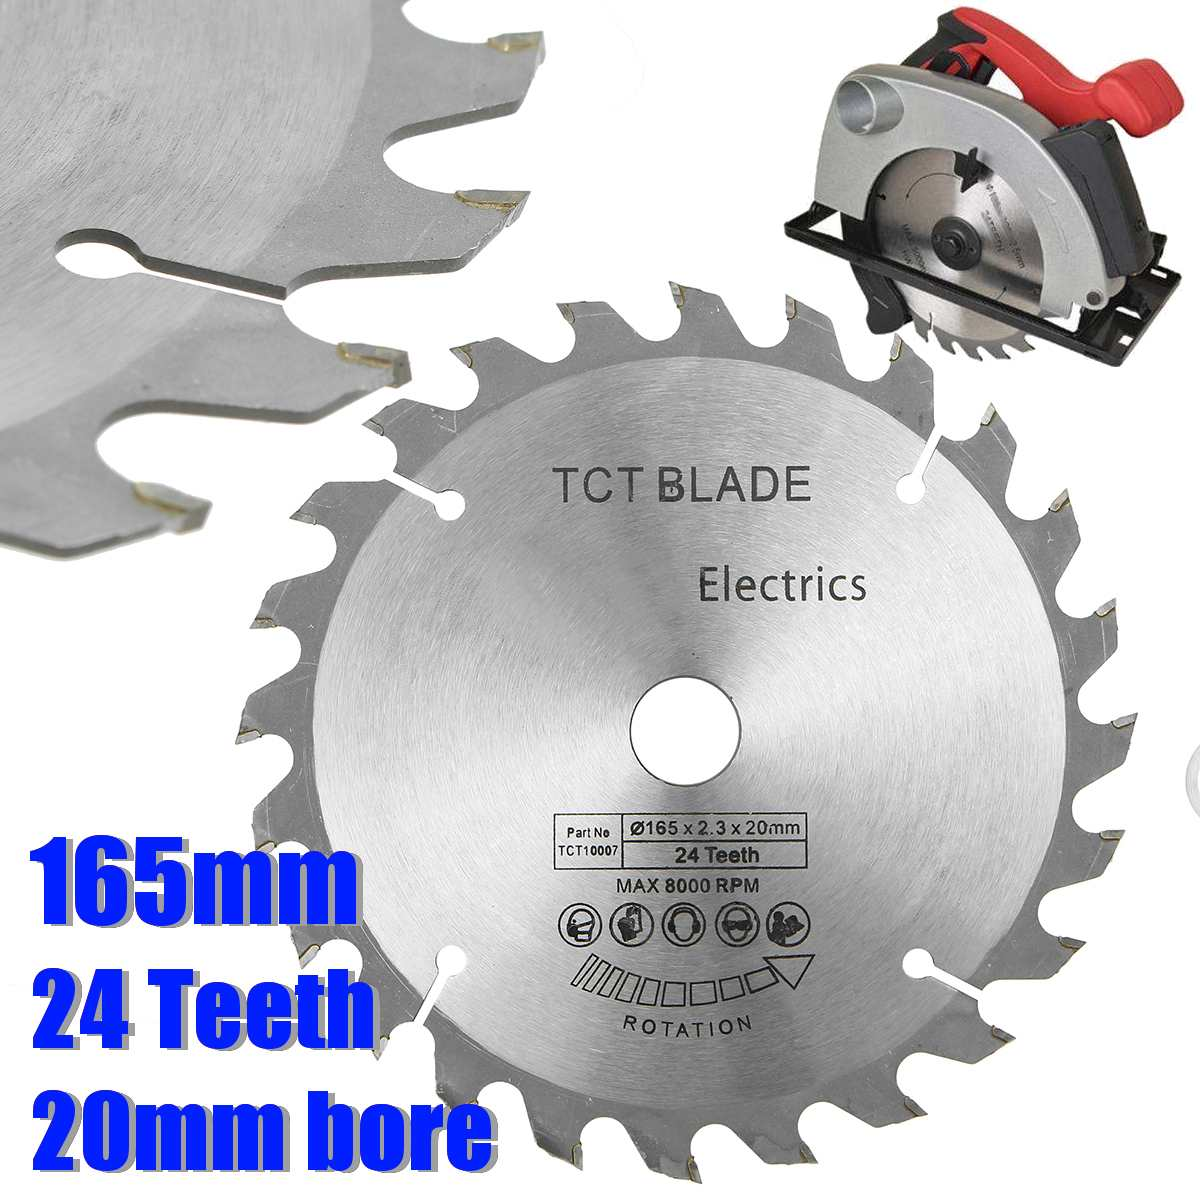 165mm 24 Teeth Saw Blade HSS 20mm Bore Cutting Disc Circular Saw Blade With Reduction Rings